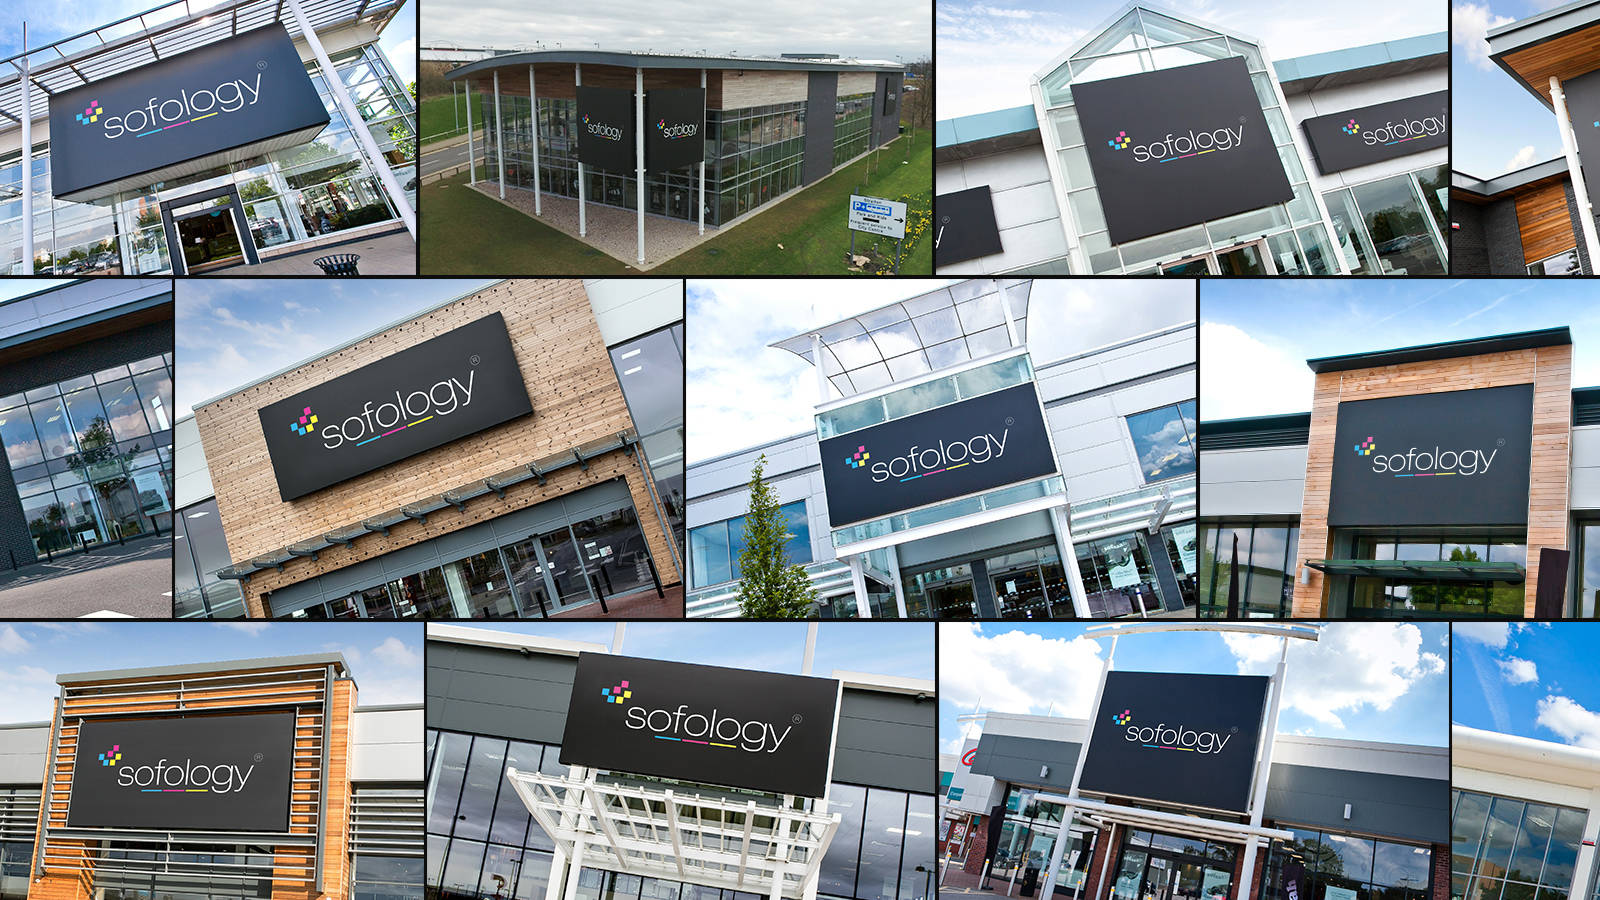 Sofology stores